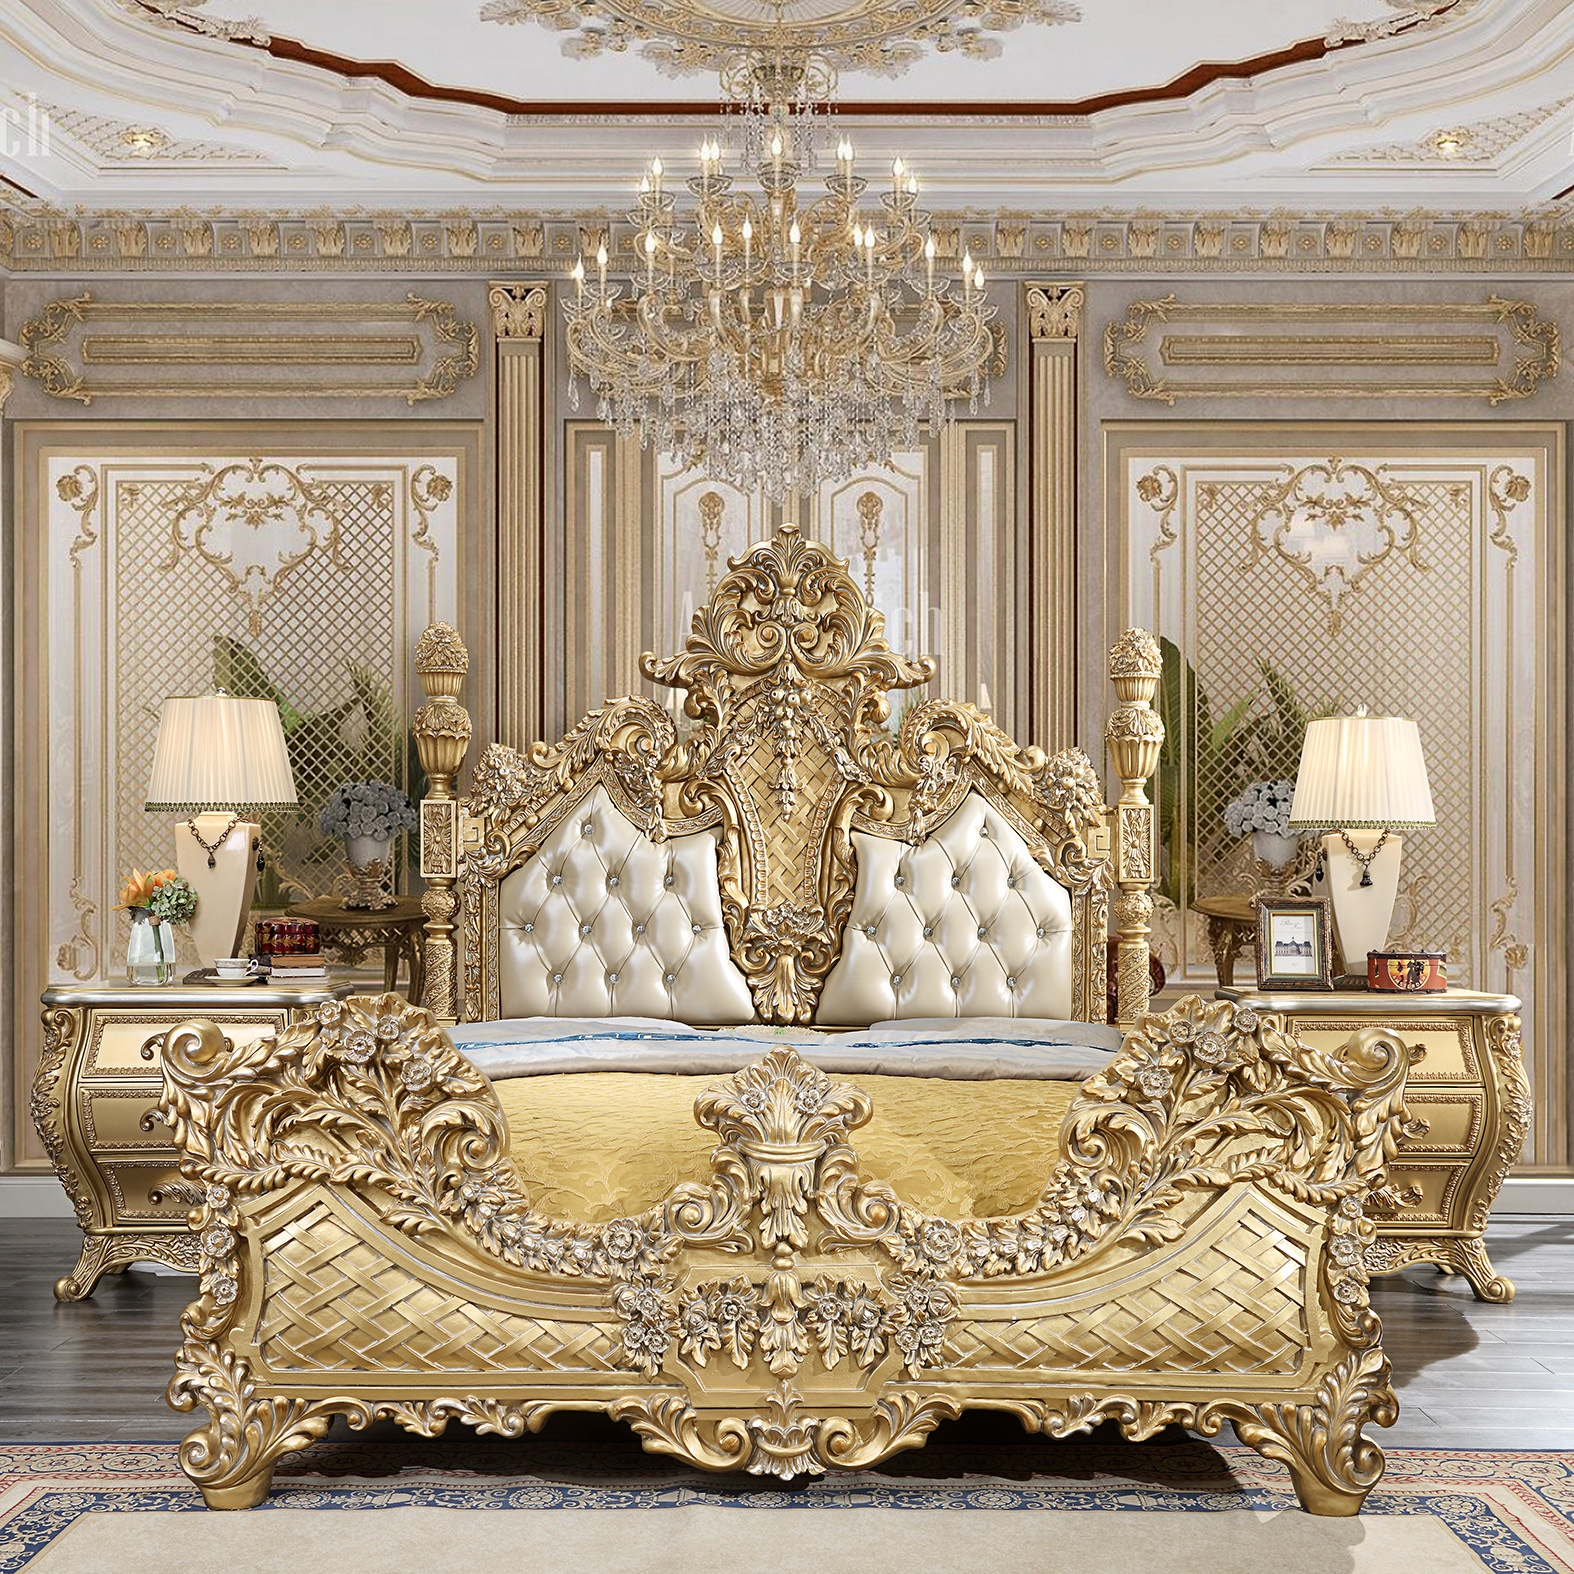 French Provincial K-1801 Bedroom